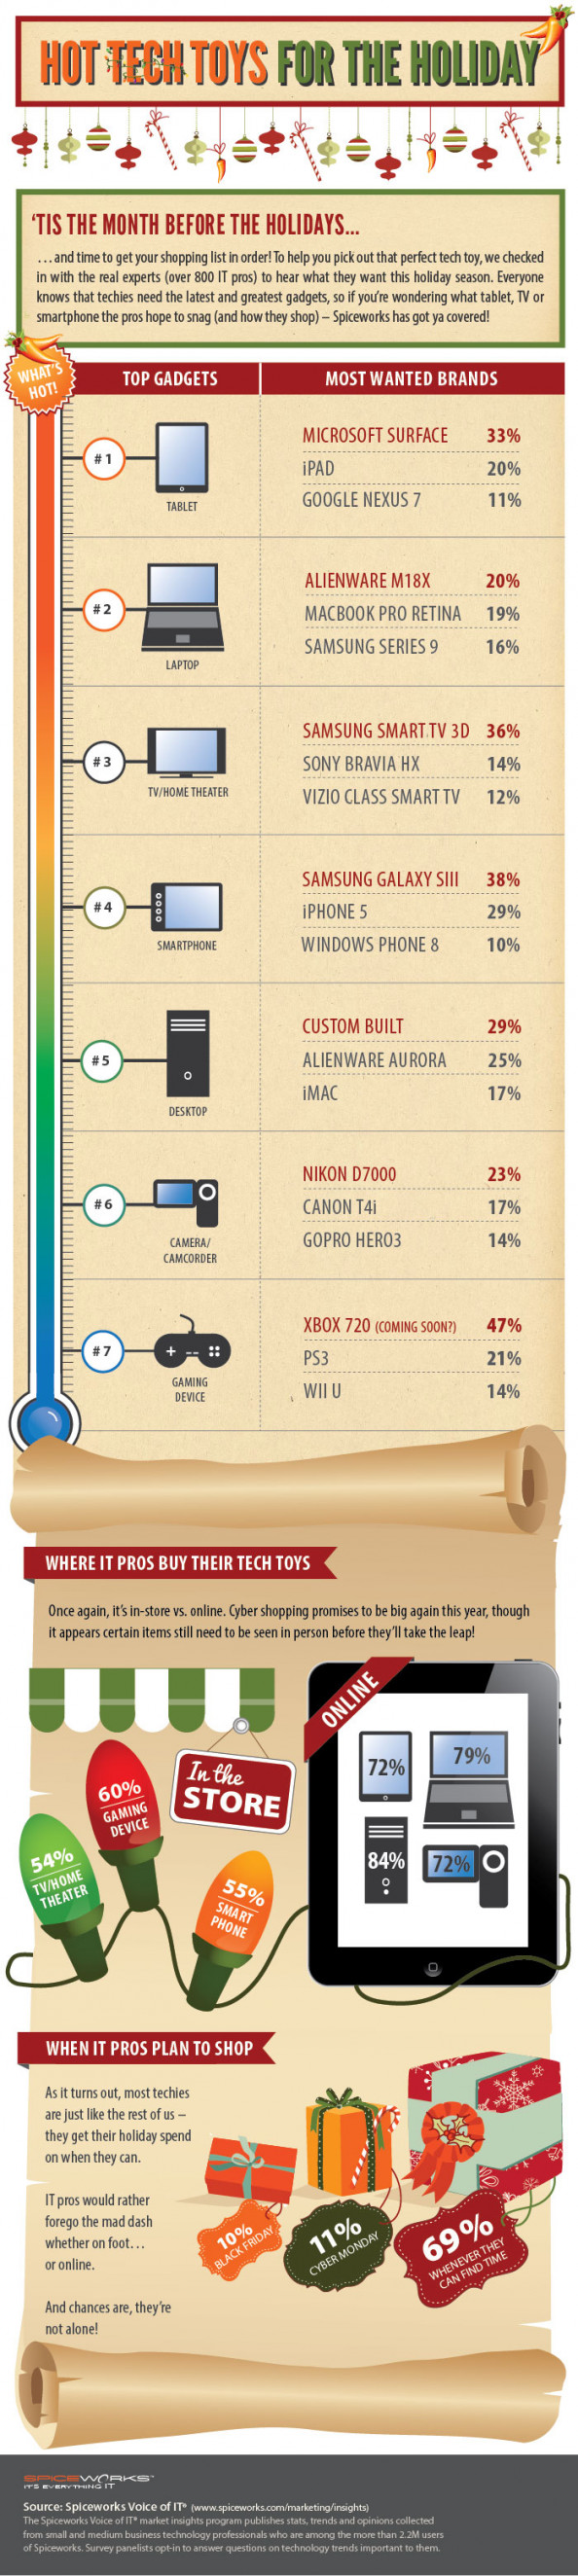 Hot Tech Toys for the Holidays Infographic